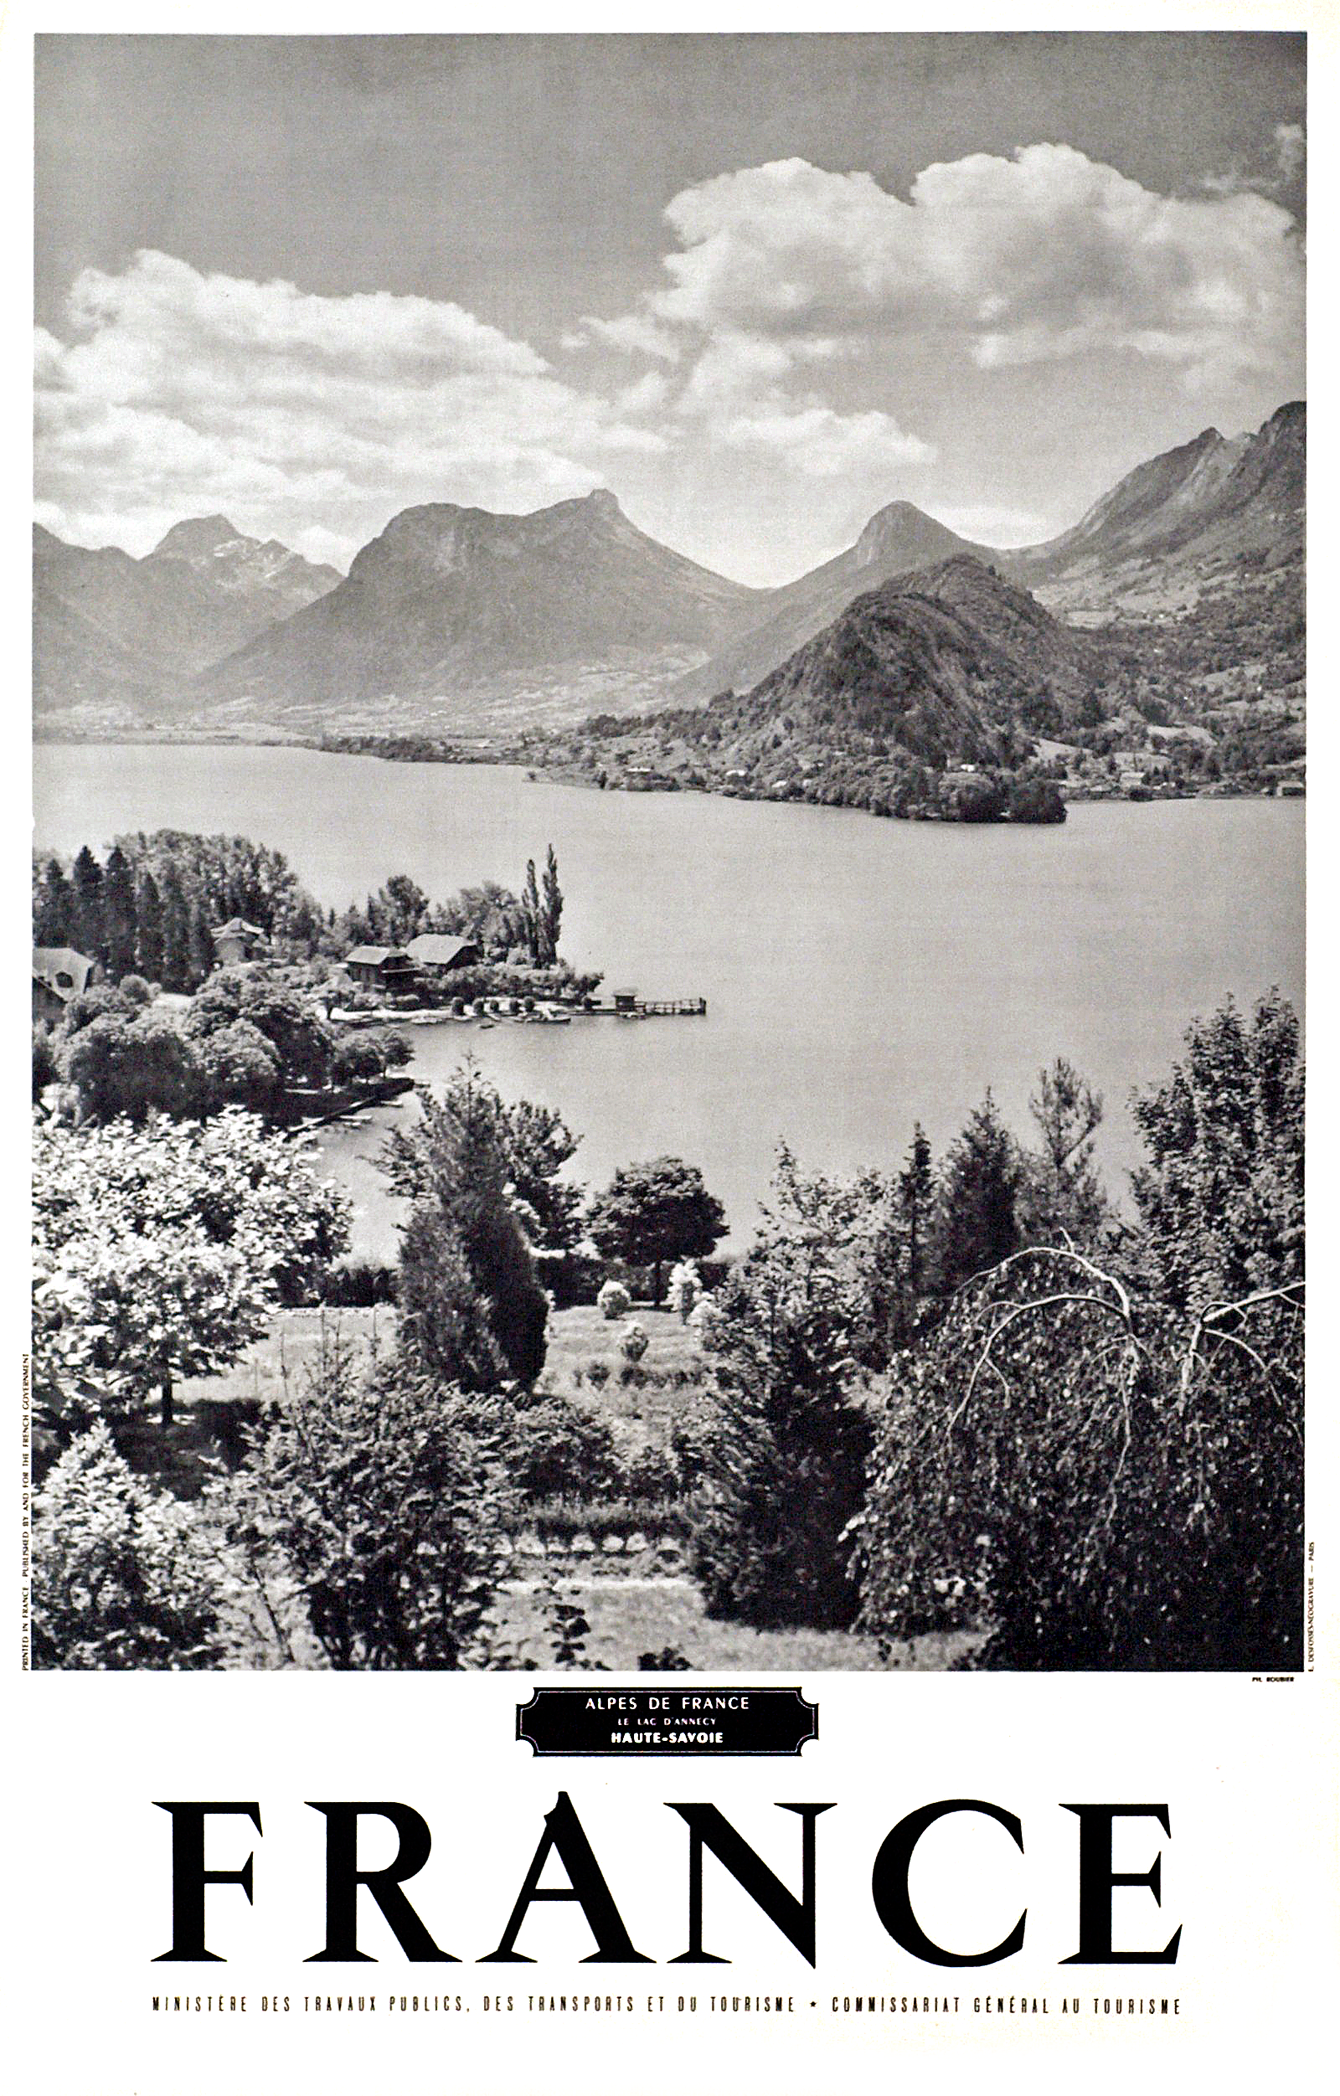 Le Lac D Annecy Viewed From Talloires Haute Savoie 1950s Photo Roubier Talloires Montmin Is A Commune In The Annecy Vintage Travel Posters Travel Posters